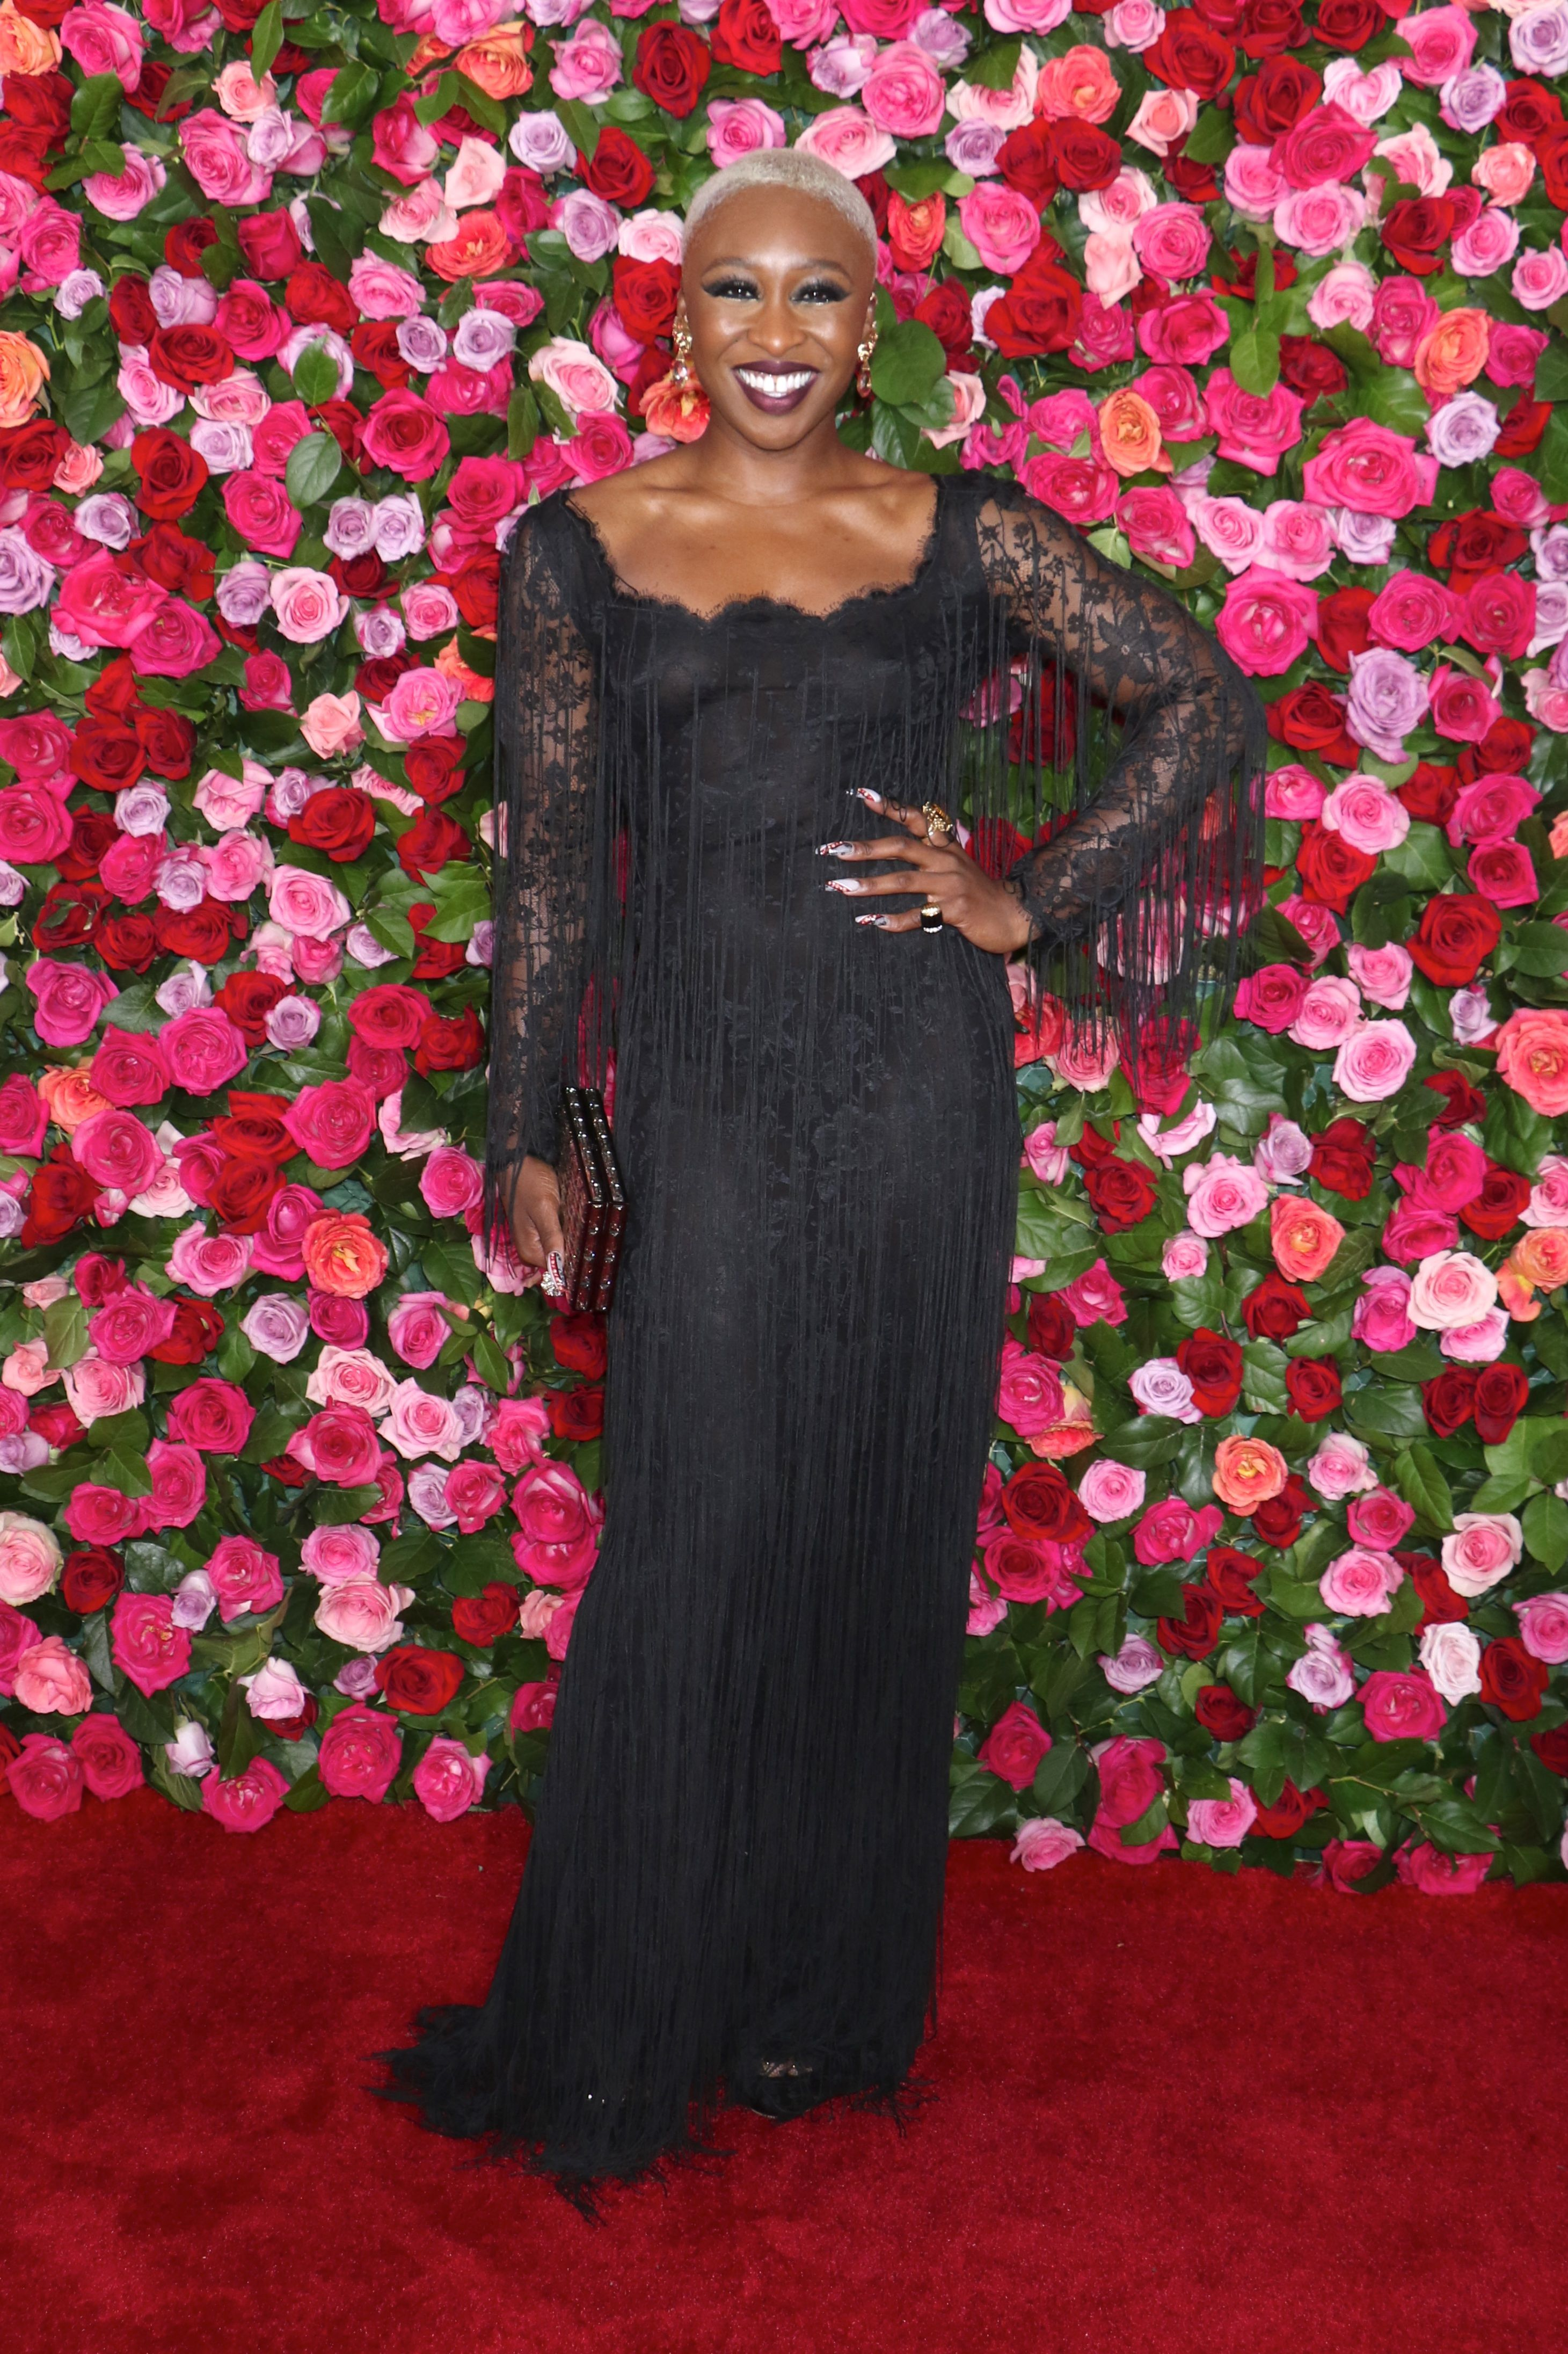 From Stage to Screen, Cynthia Erivo Is Ready For Her Growing Film Career